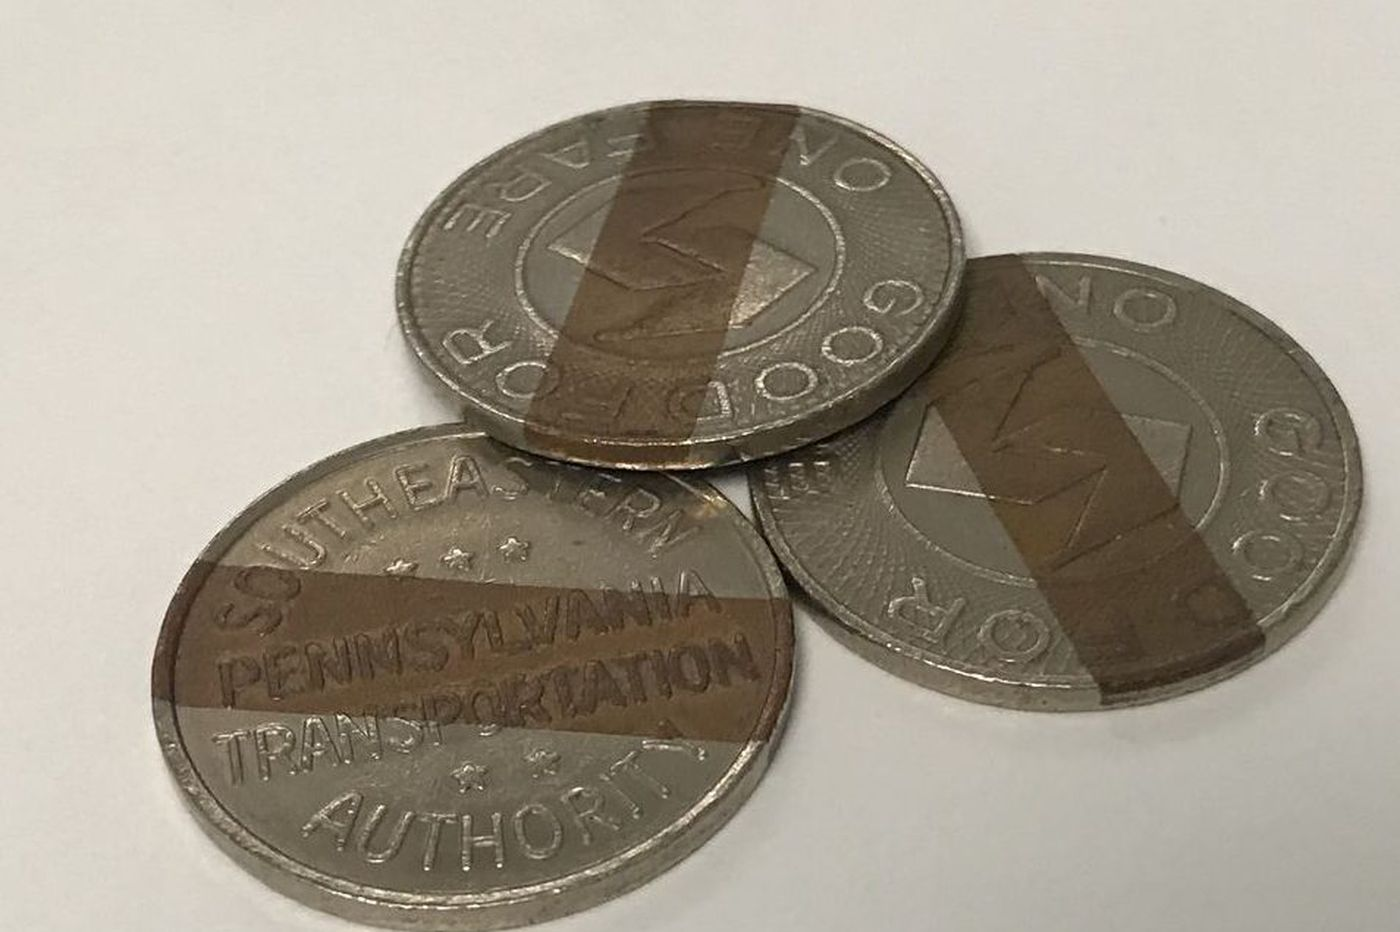 SEPTA phasing out token sales on subway lines